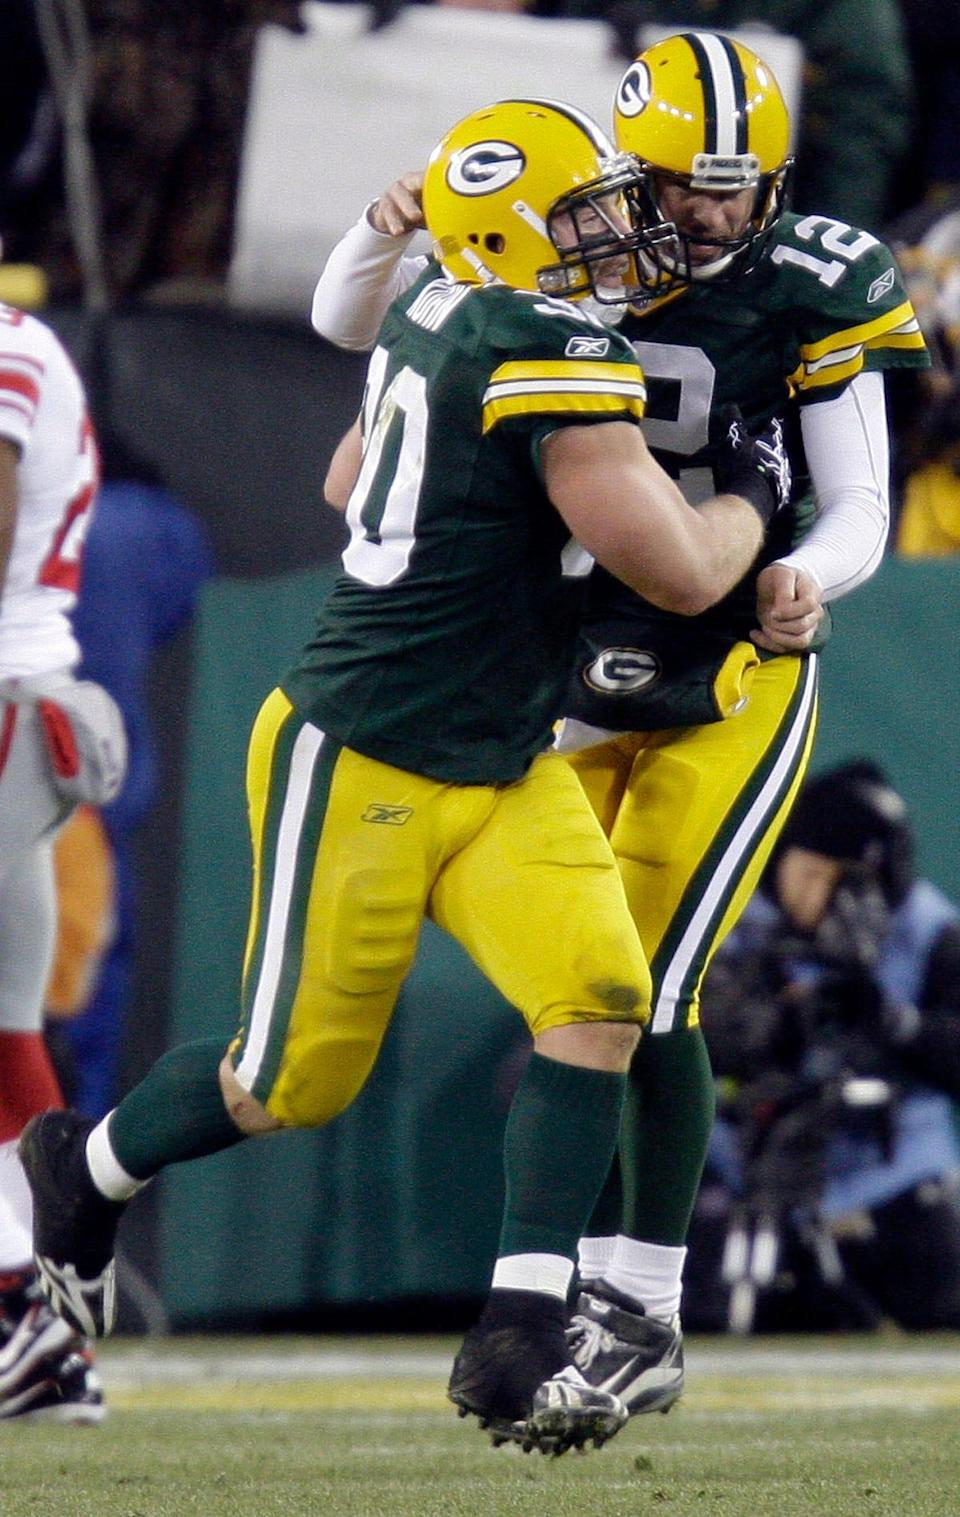 Green Bay Packers fullback John Kuhn (30) is congratulated by quarterback Aaron Rodgers after an 8 yard touchdown run during the second quarter of their game against the New York Giants Sunday, December 26, 2010 at Lambeau Field in Green Bay, Wis.